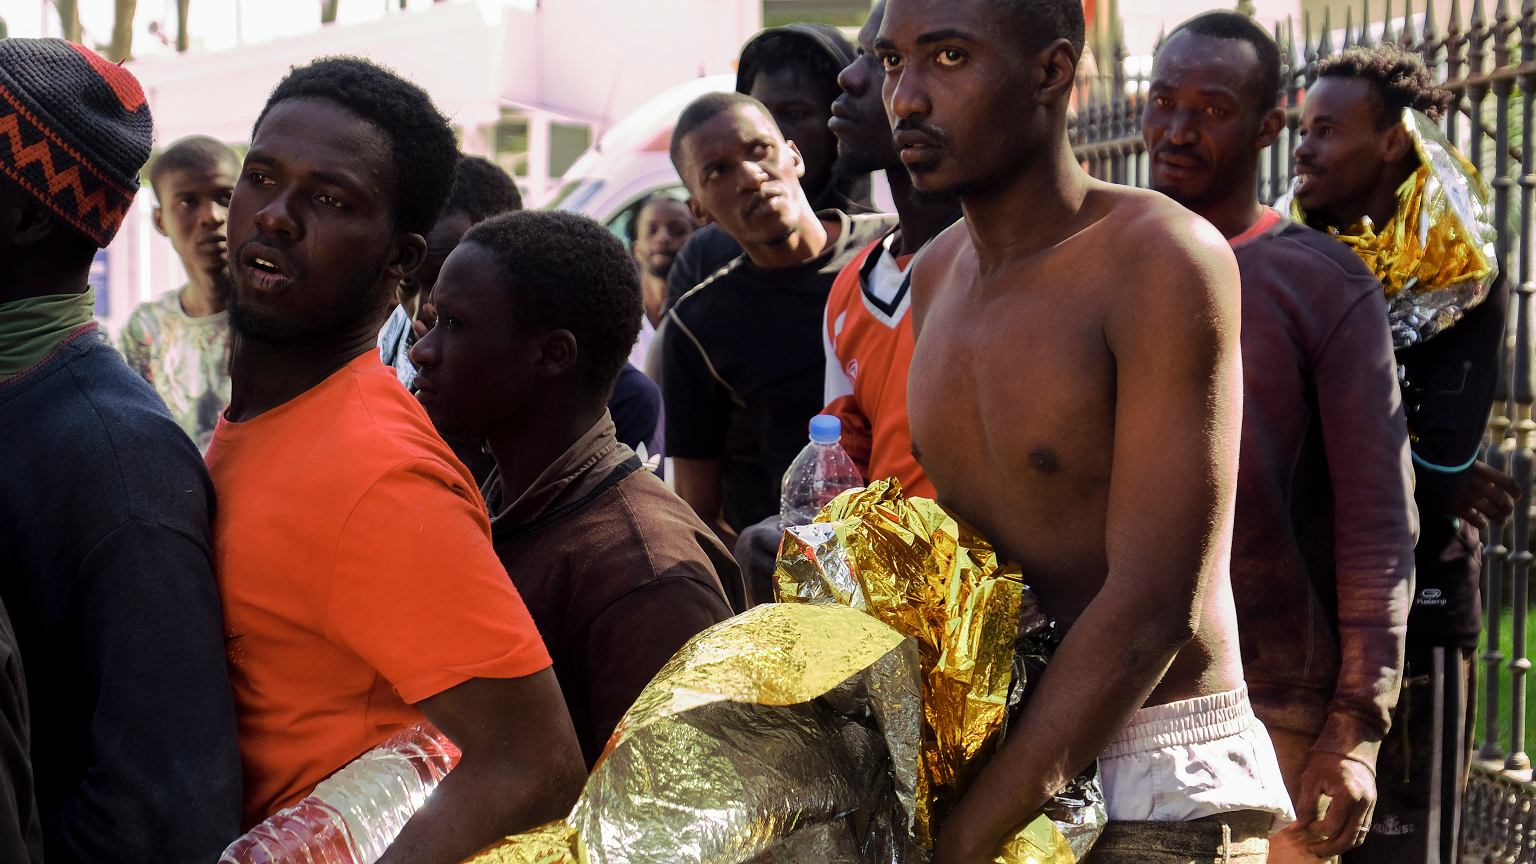 Canary Islands: over 1,600 migrants from Africa arrived in two days | News  from the world - World Today News